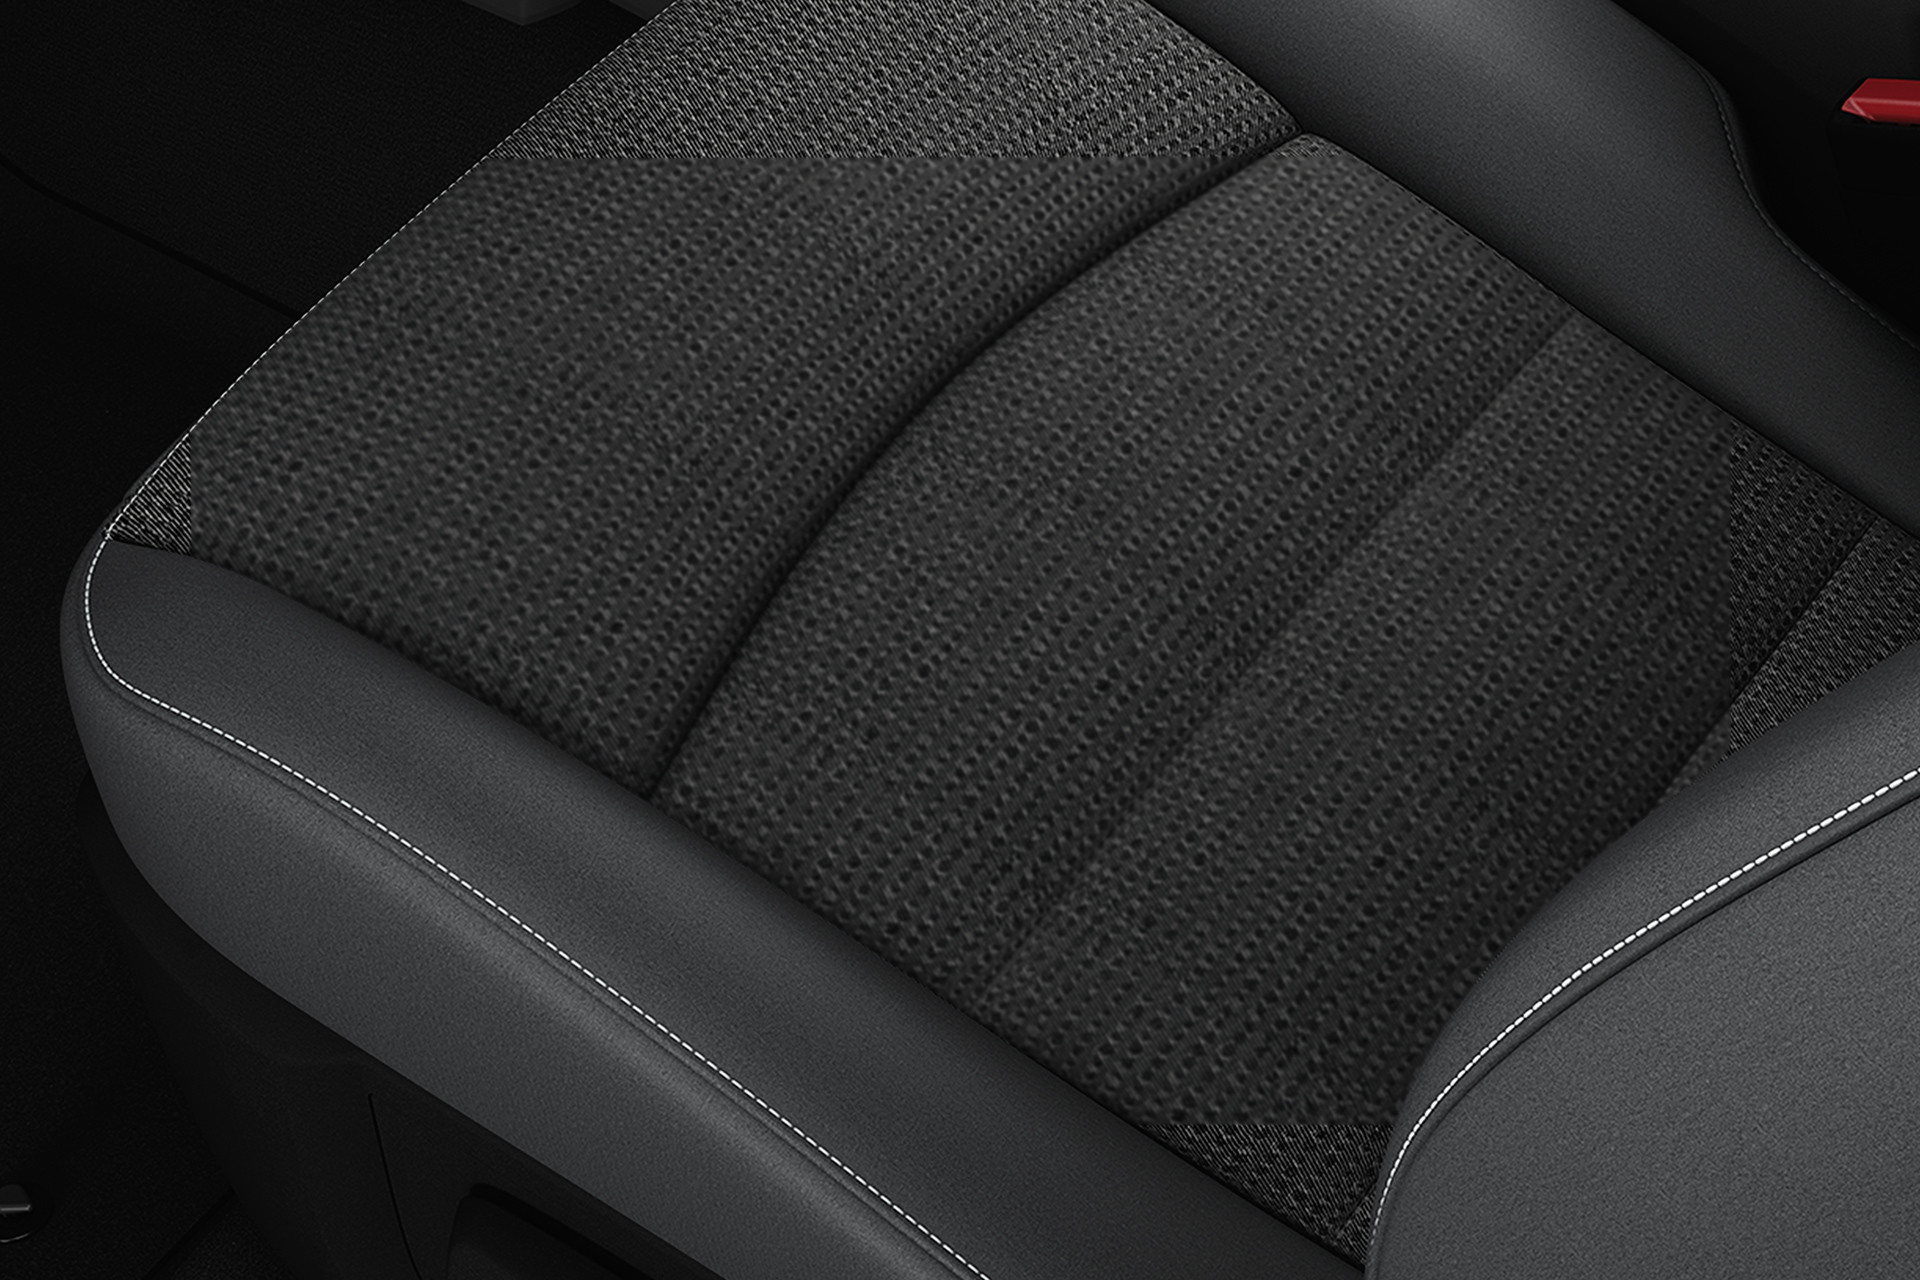 2019 Ram 1500 Classic interior, showing premium cloth seating